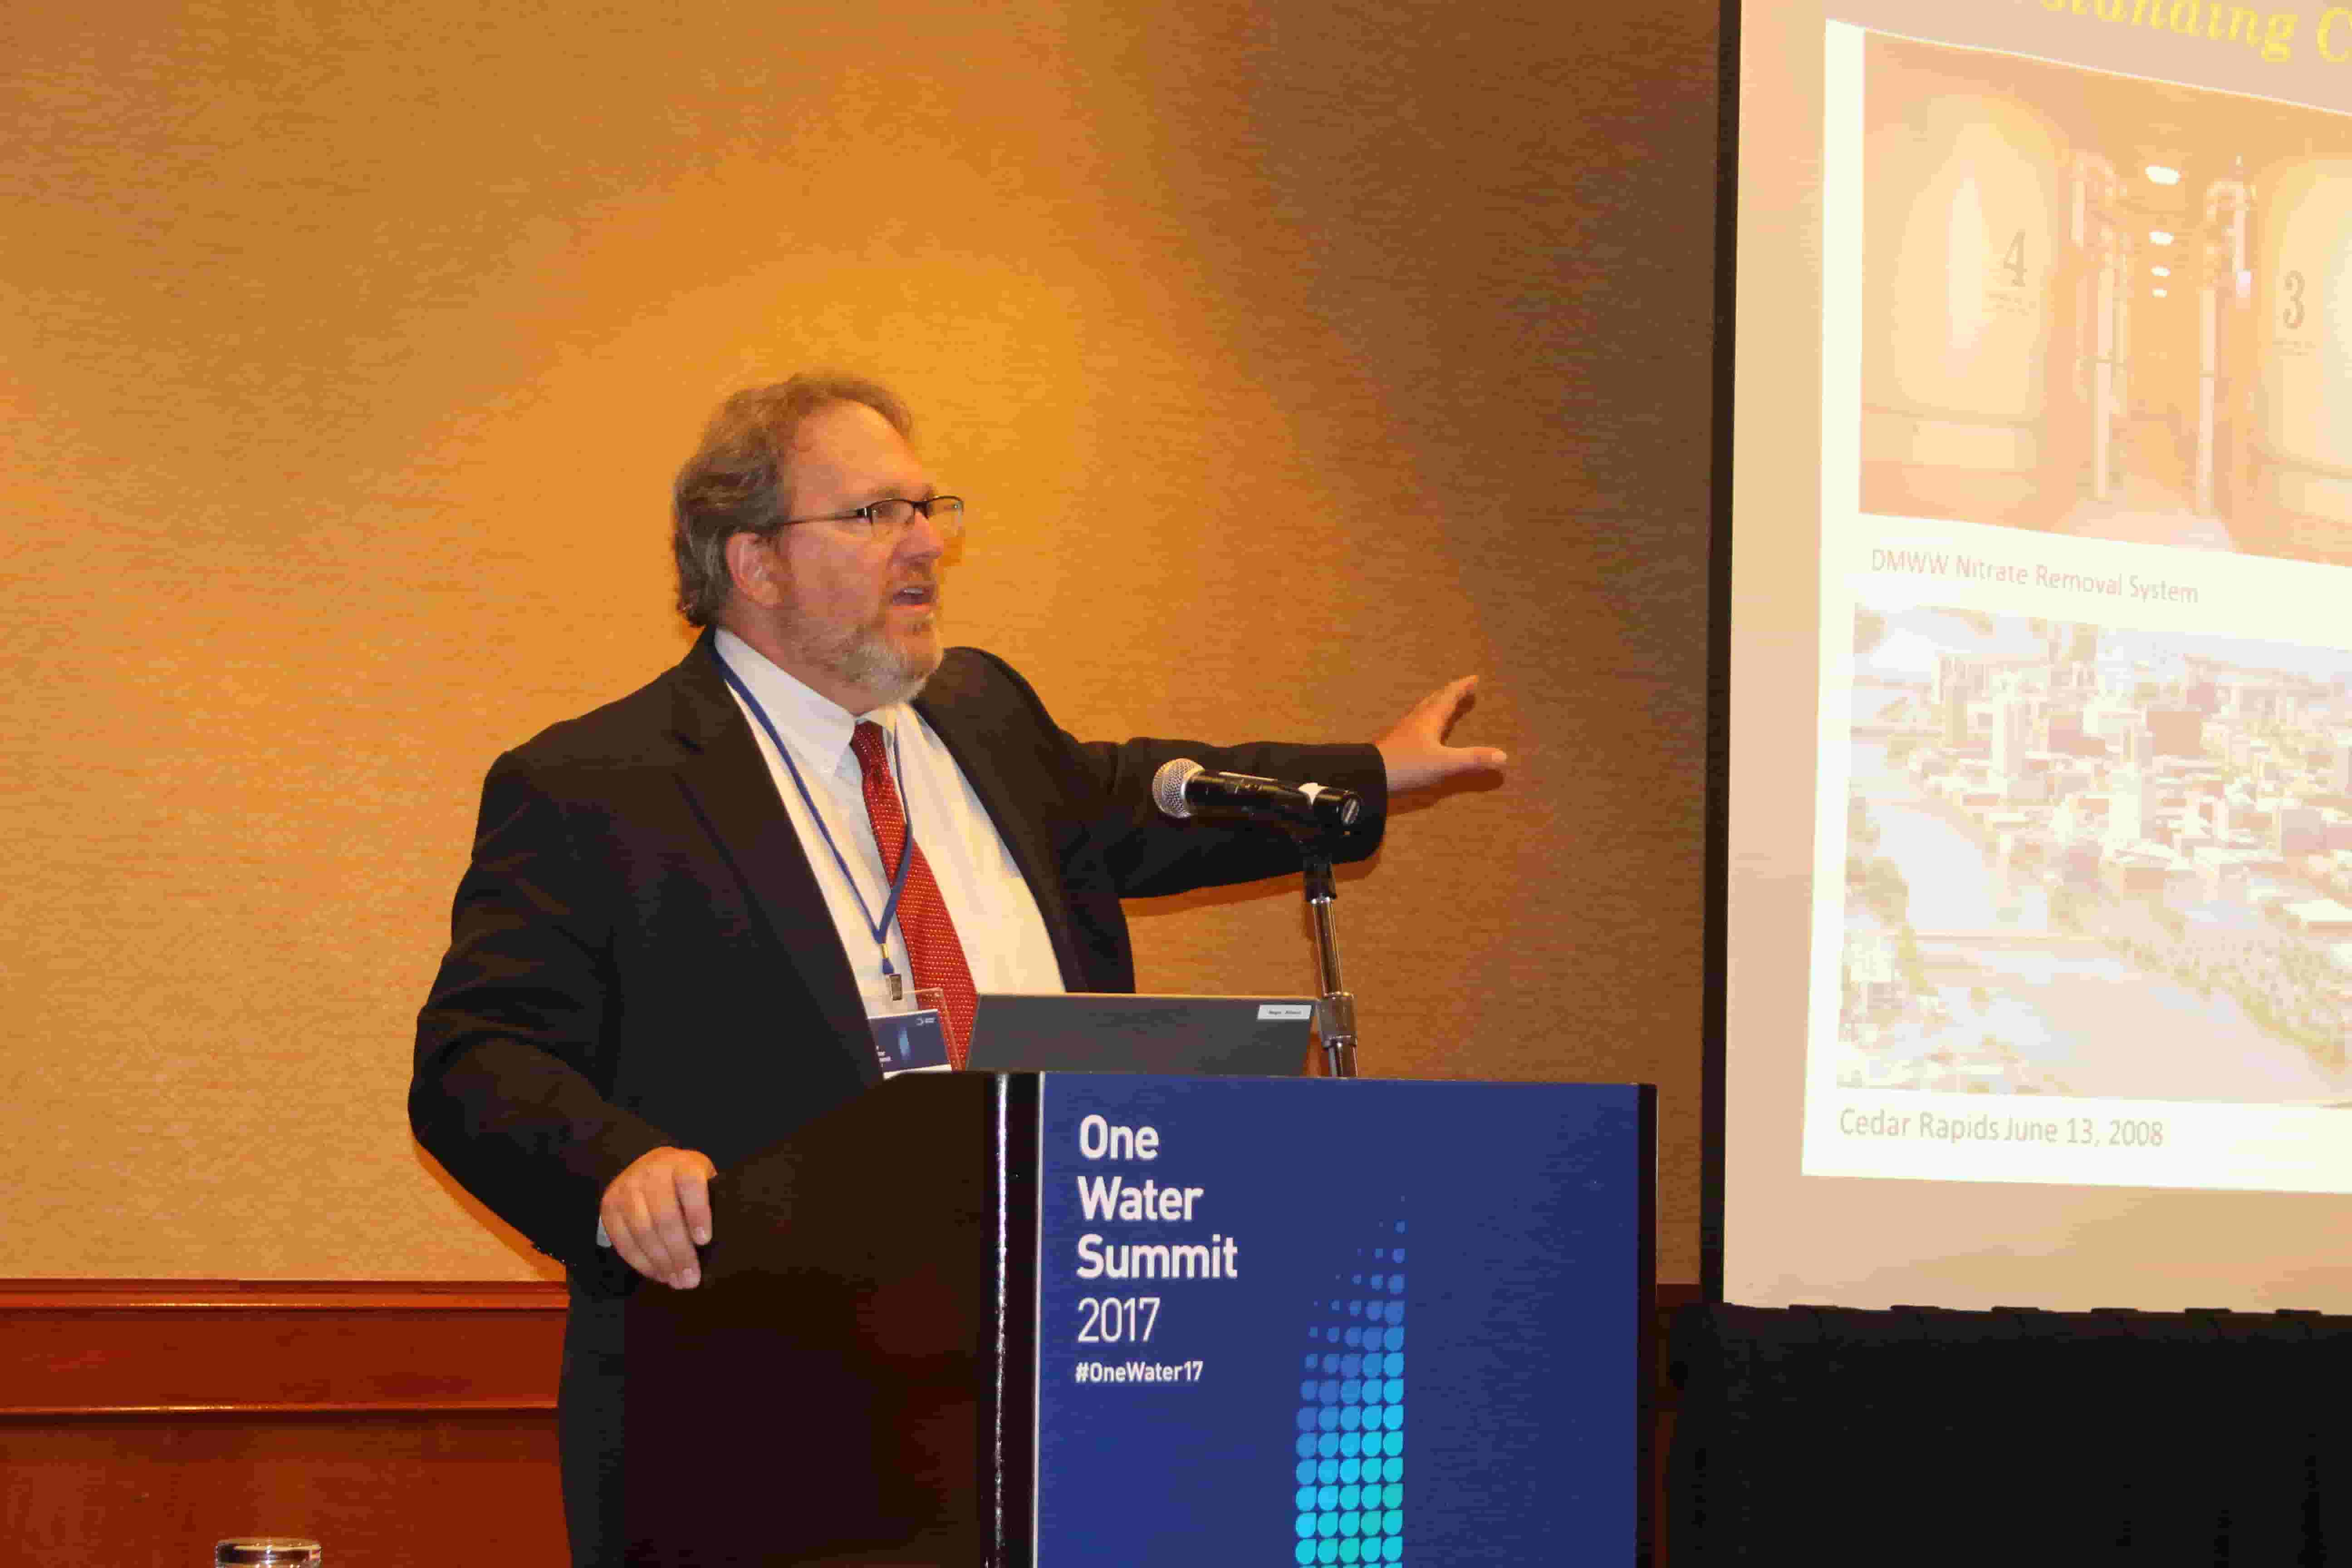 Roger Wolf, director of Environmental Programs and Services for ISA, speaking at the One Water Summit 2017